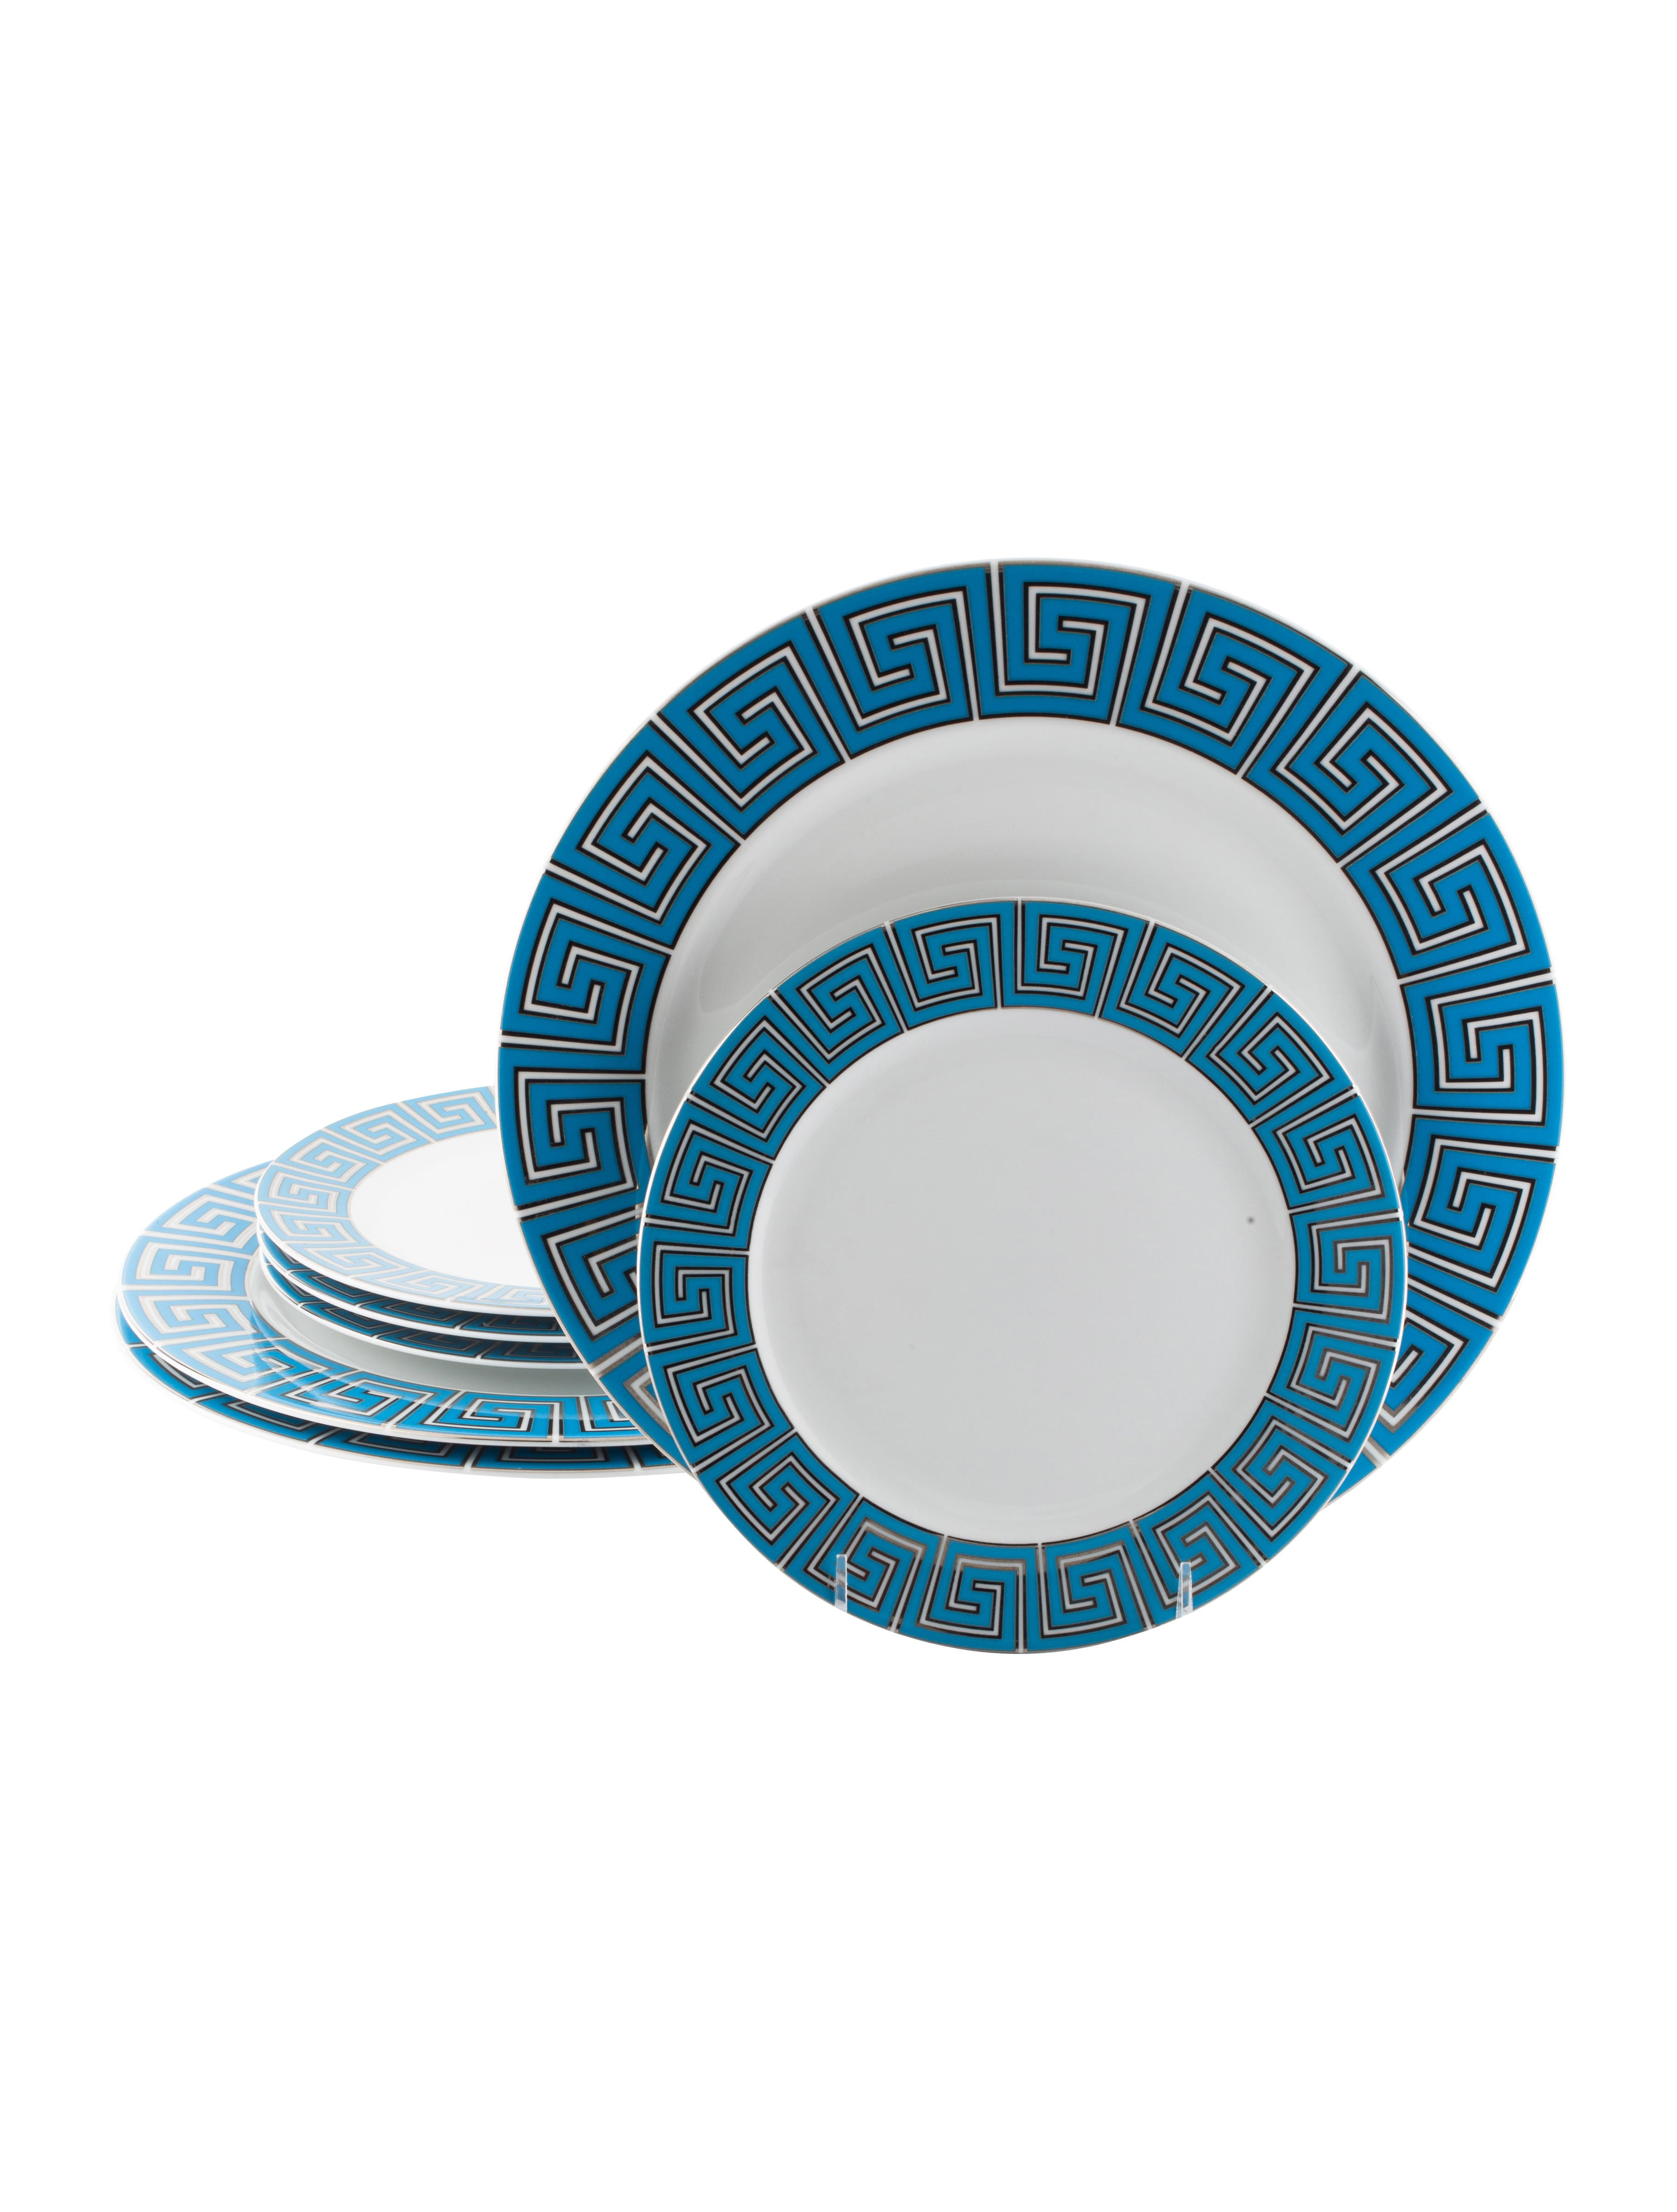 7-Piece Greek Key Dinner Plates u0026 Salad Plates  sc 1 st  The RealReal & Jonathan Adler 7-Piece Greek Key Dinner Plates u0026 Salad Plates ...